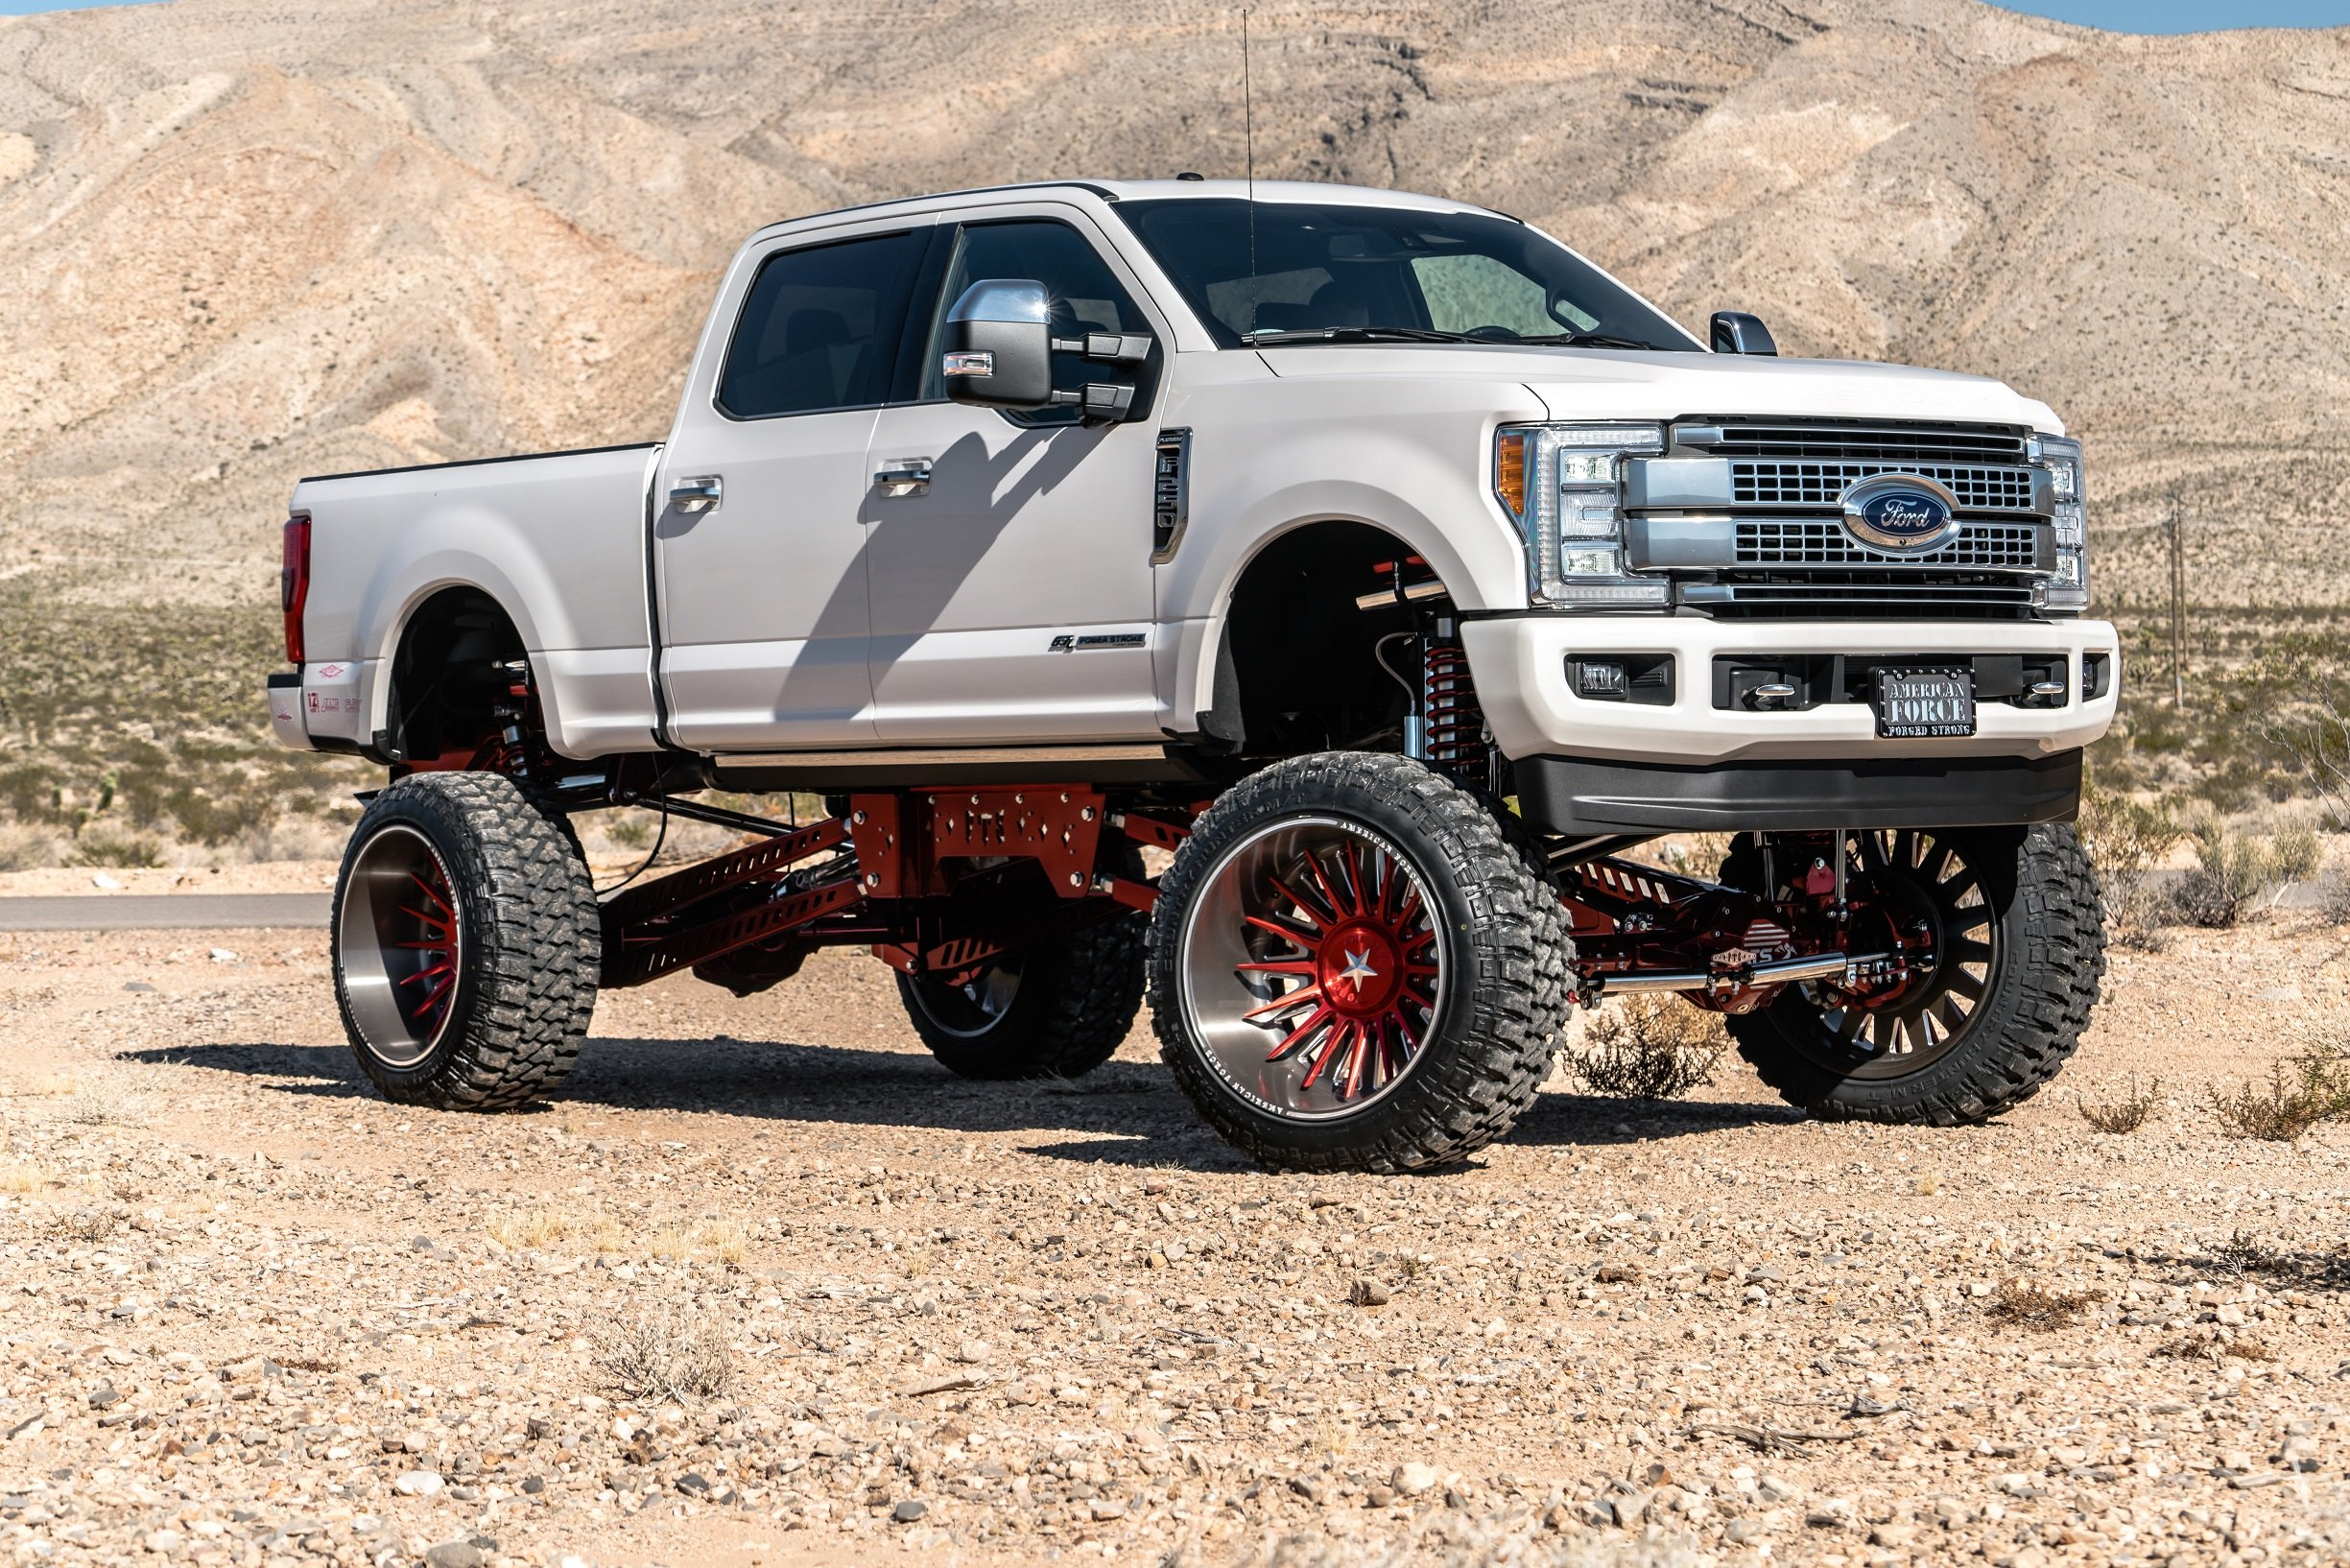 Found On Road Dirt Ford F 250 Gallery Lifted Super Duty Trucks 2017 F350 Photo By American Force